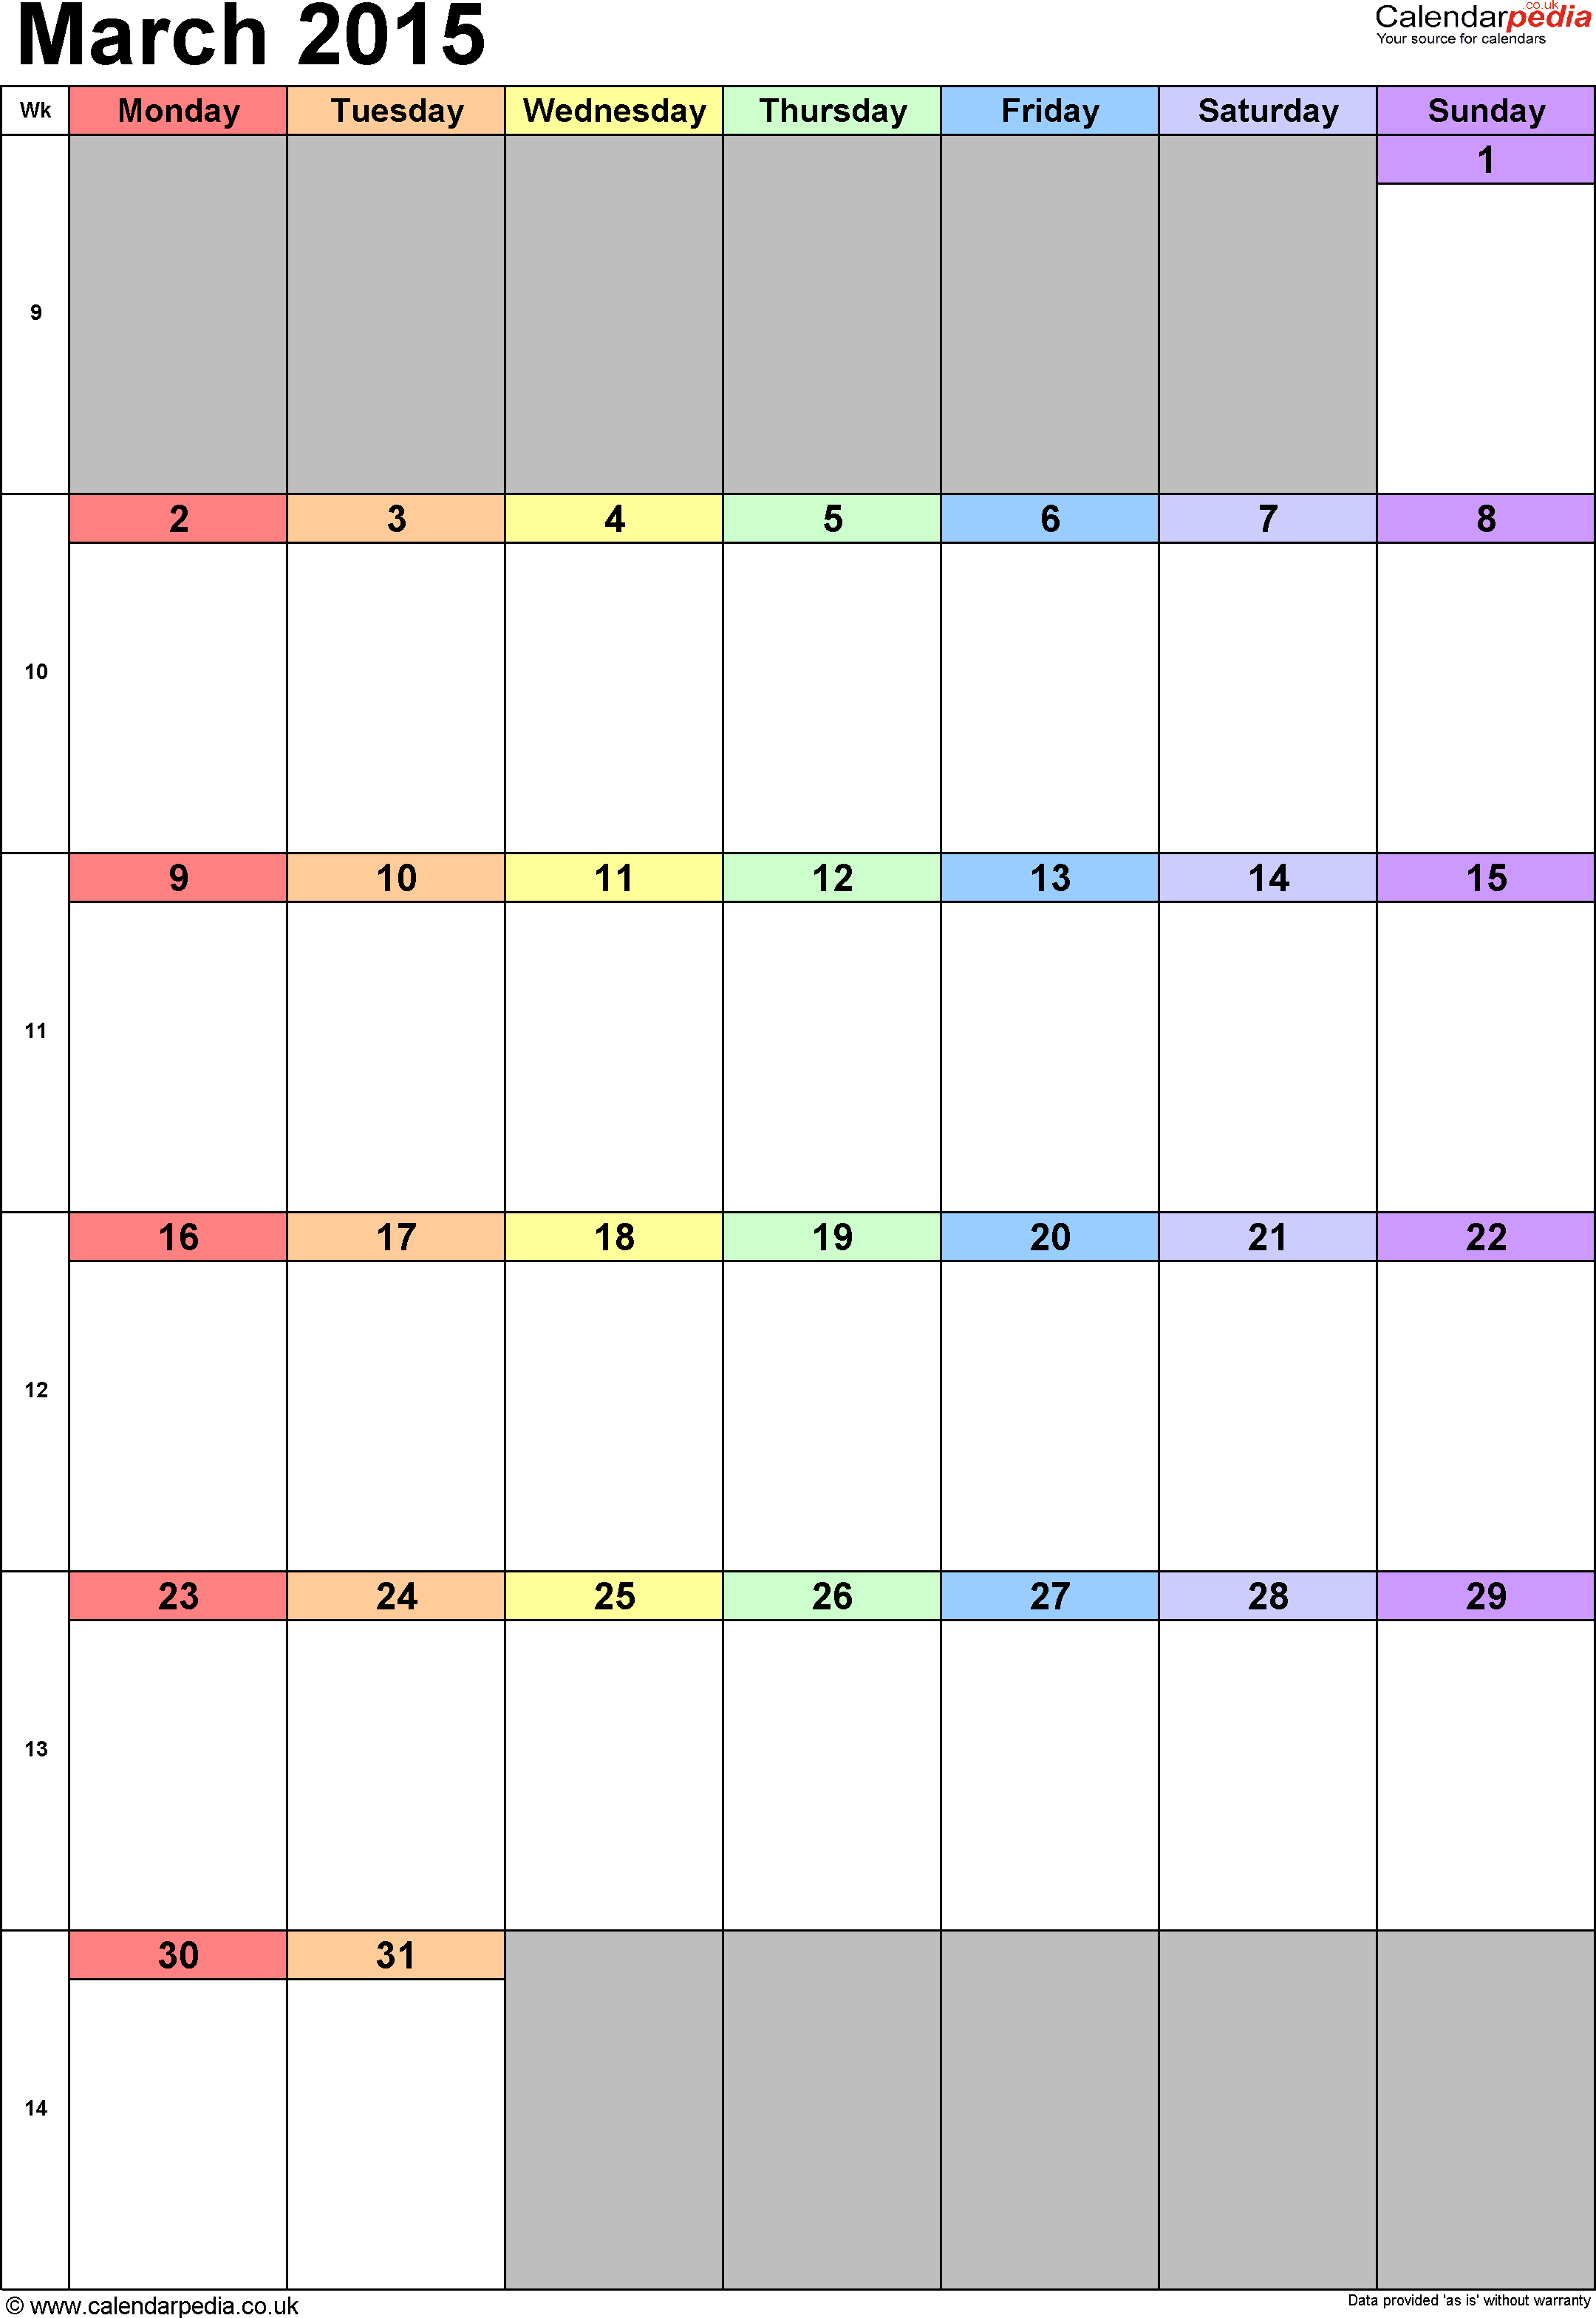 Calendar March 2015 portrait orientation, 1 page, with UK bank holidays and week numbers